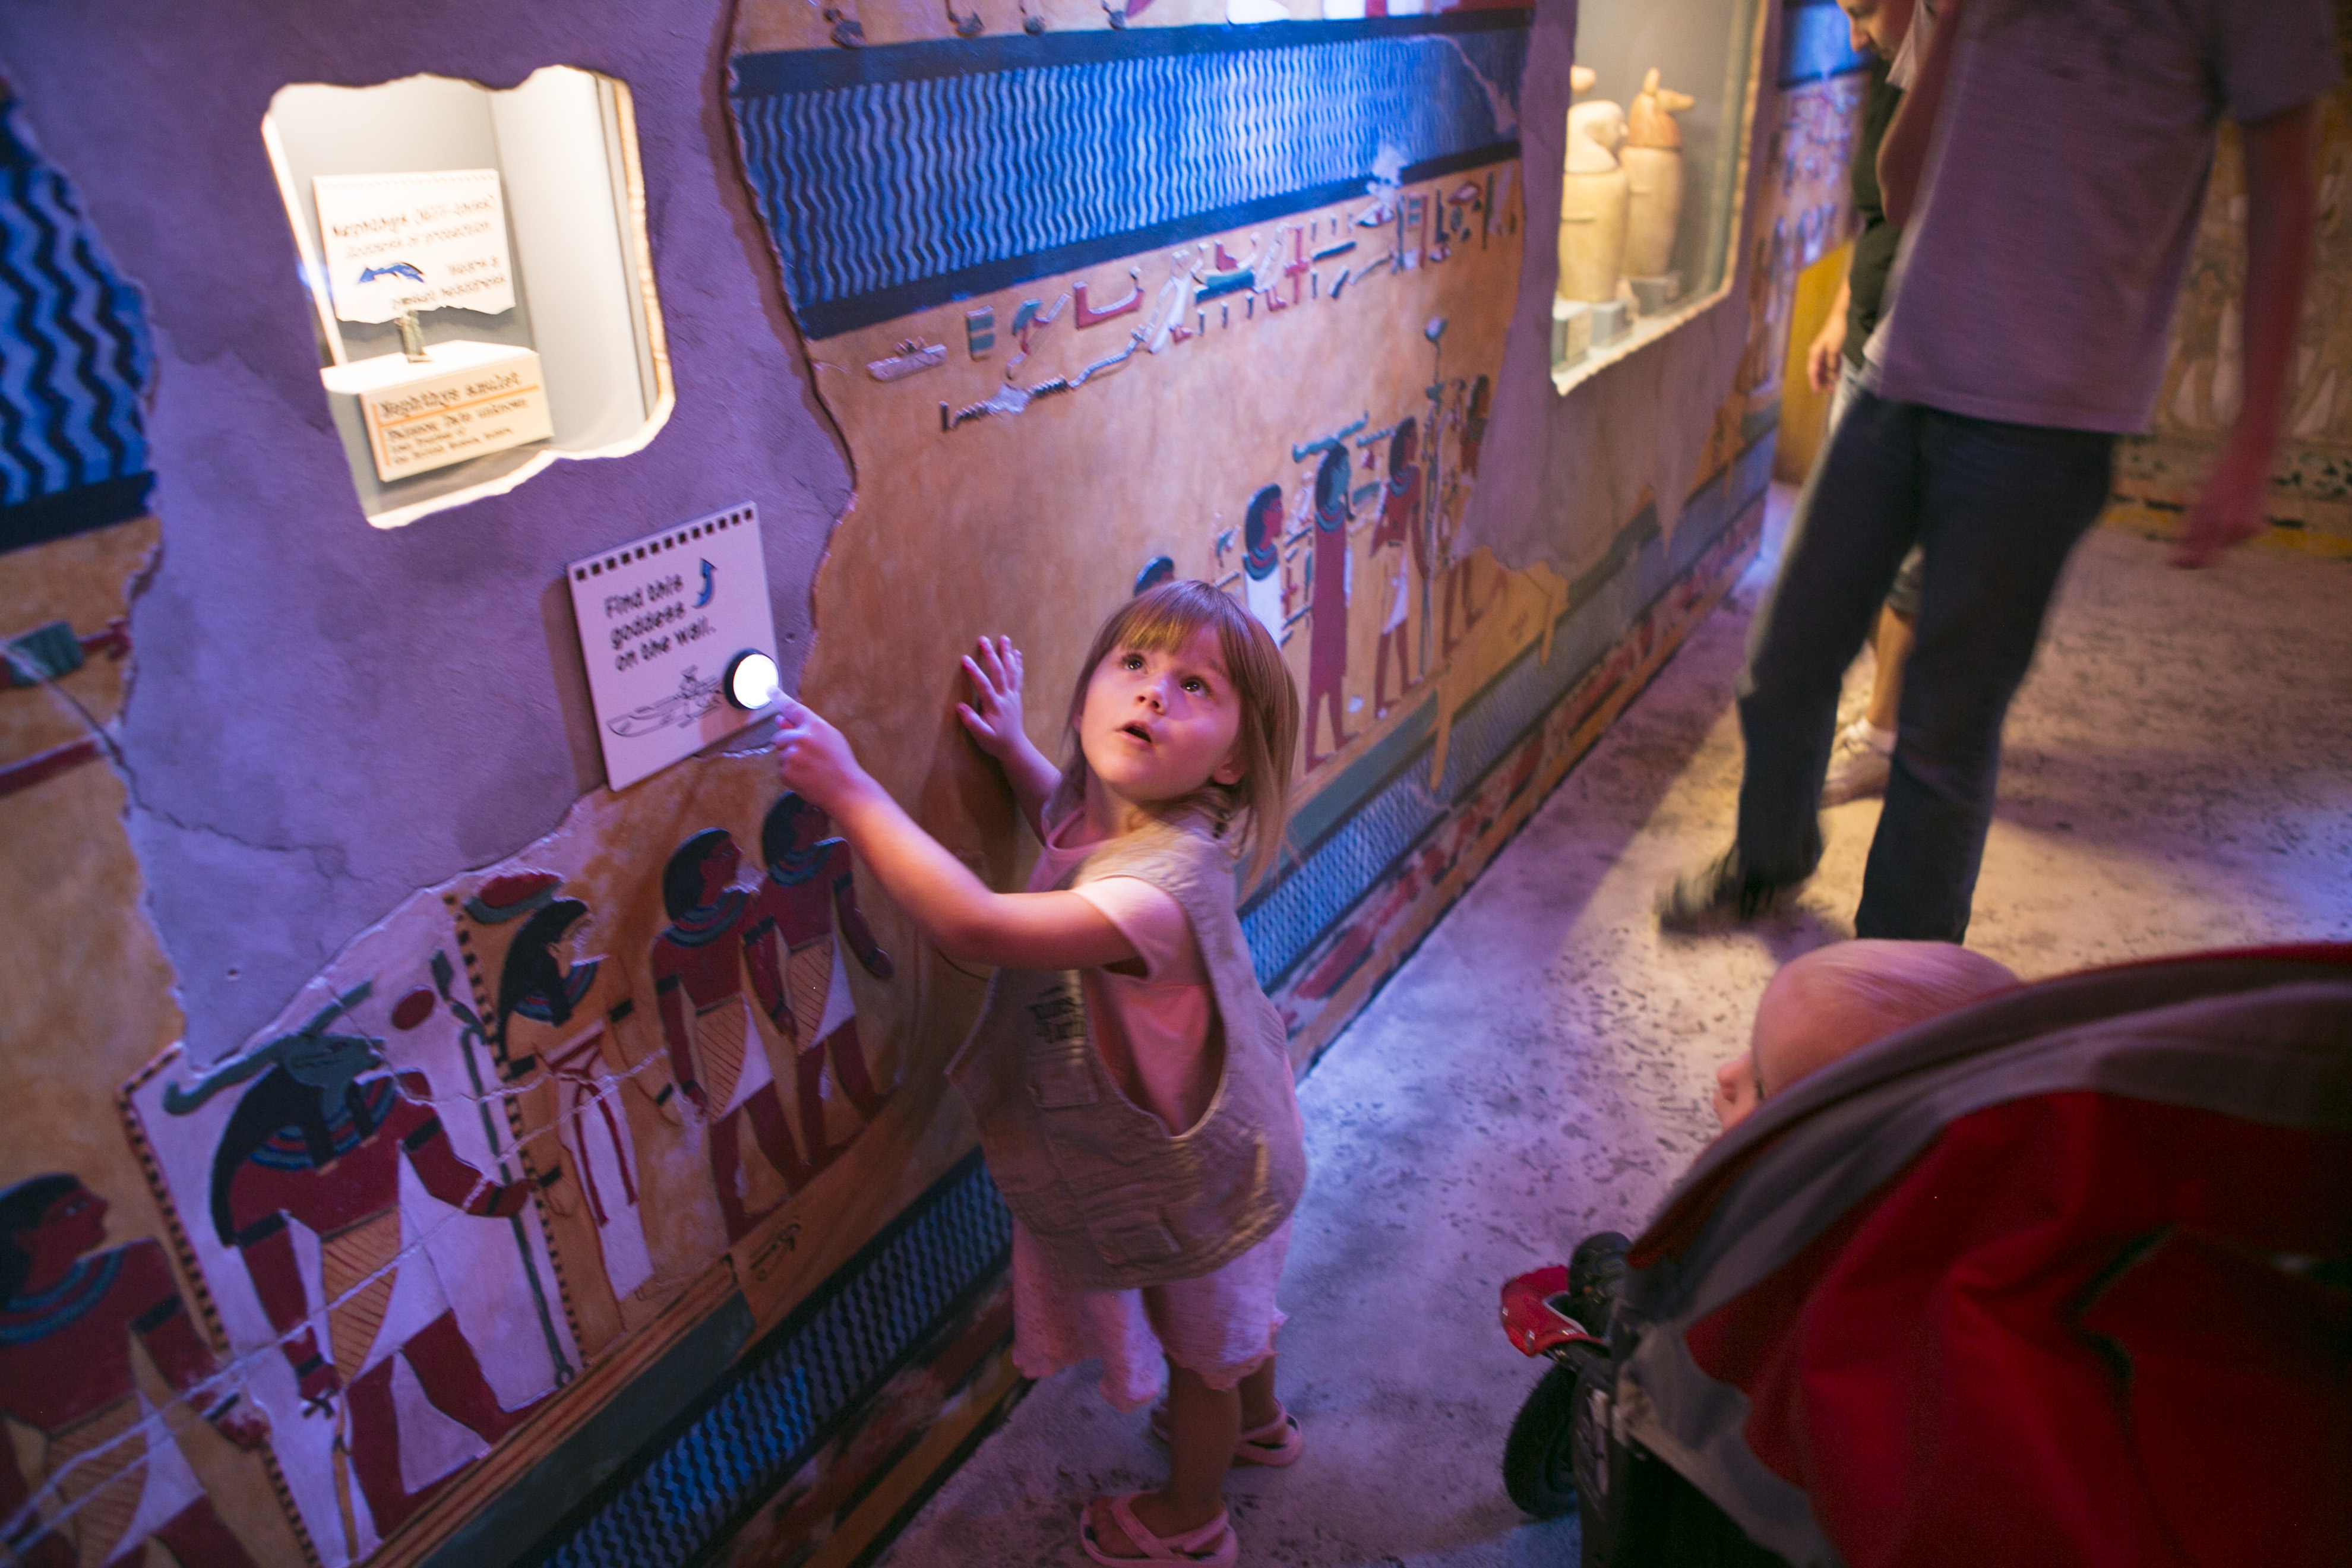 Indianpolis_Childrens_Museum-001_40